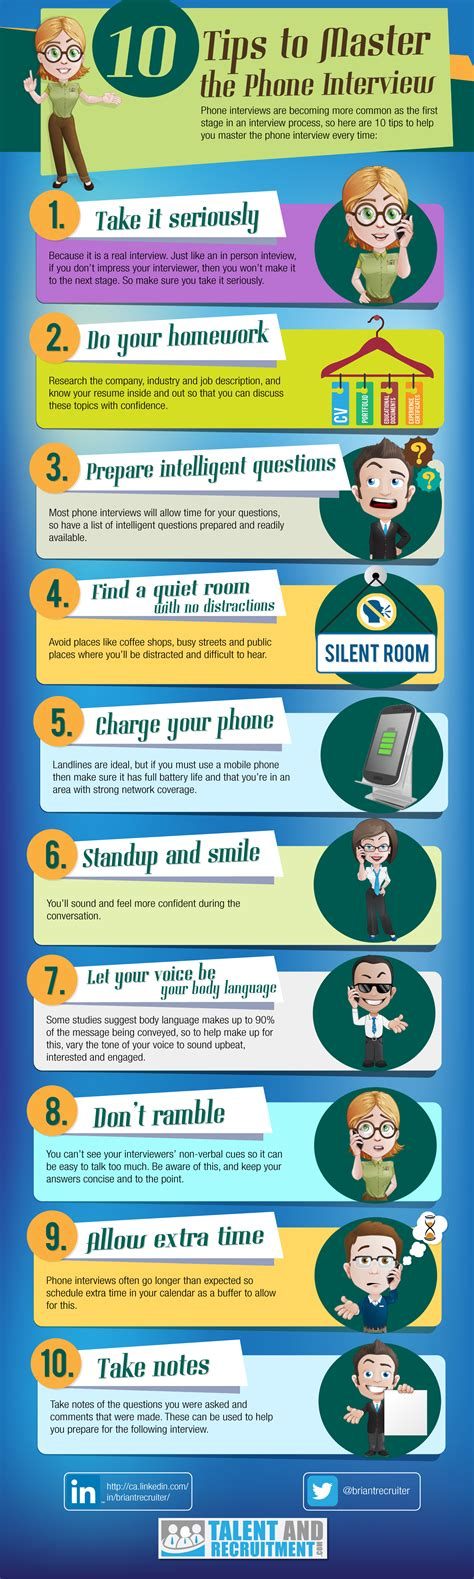 10 Tips To Master The Phone Interview [infographic